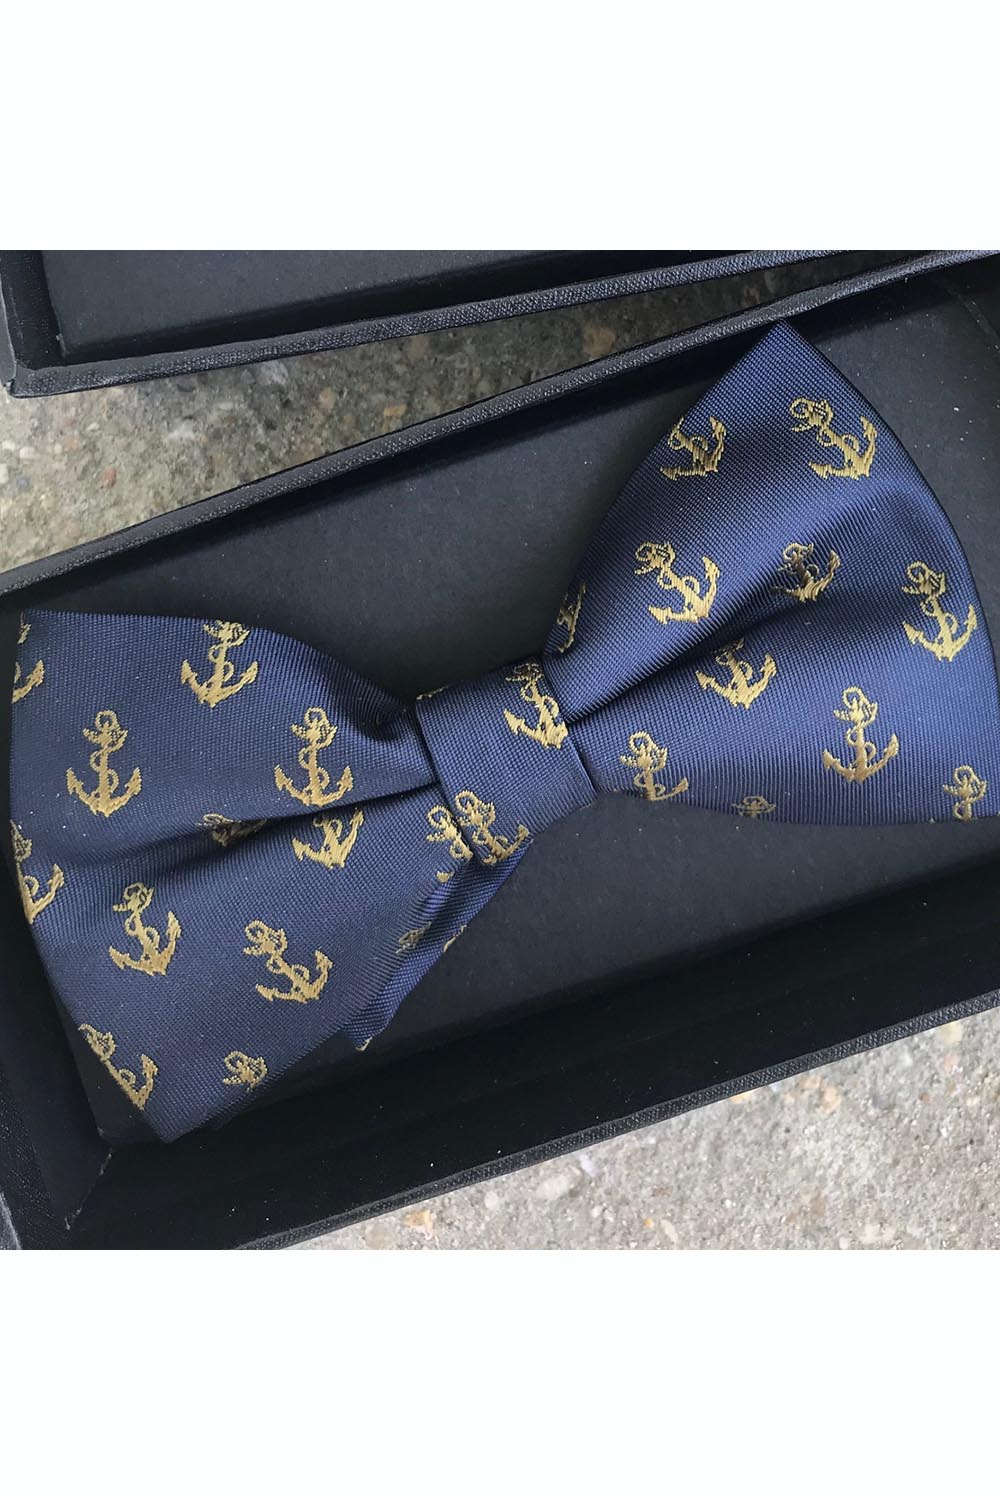 Bowtie - Navy Anchors